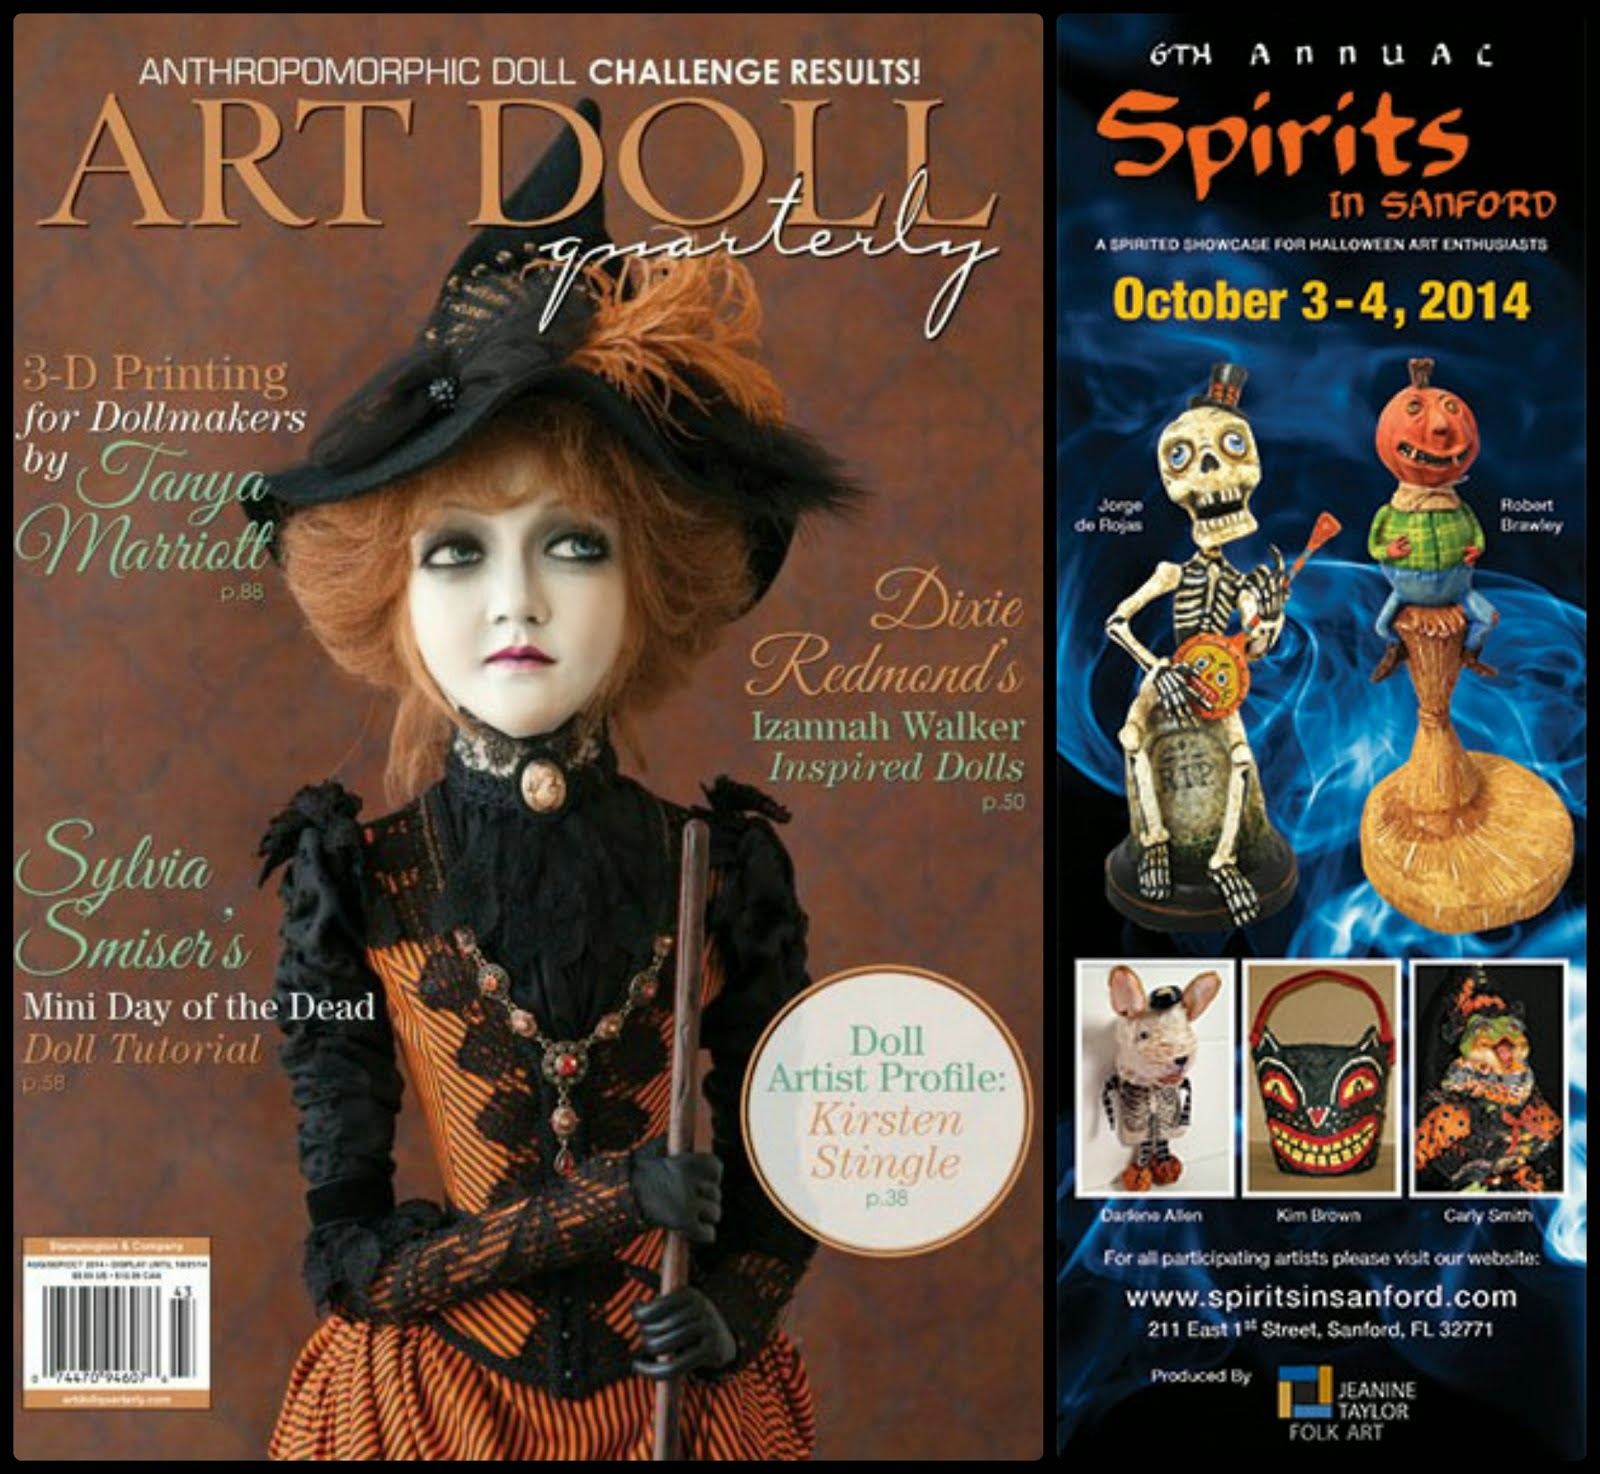 Art Doll Quarterly Spirits in Sanford Ad 2014